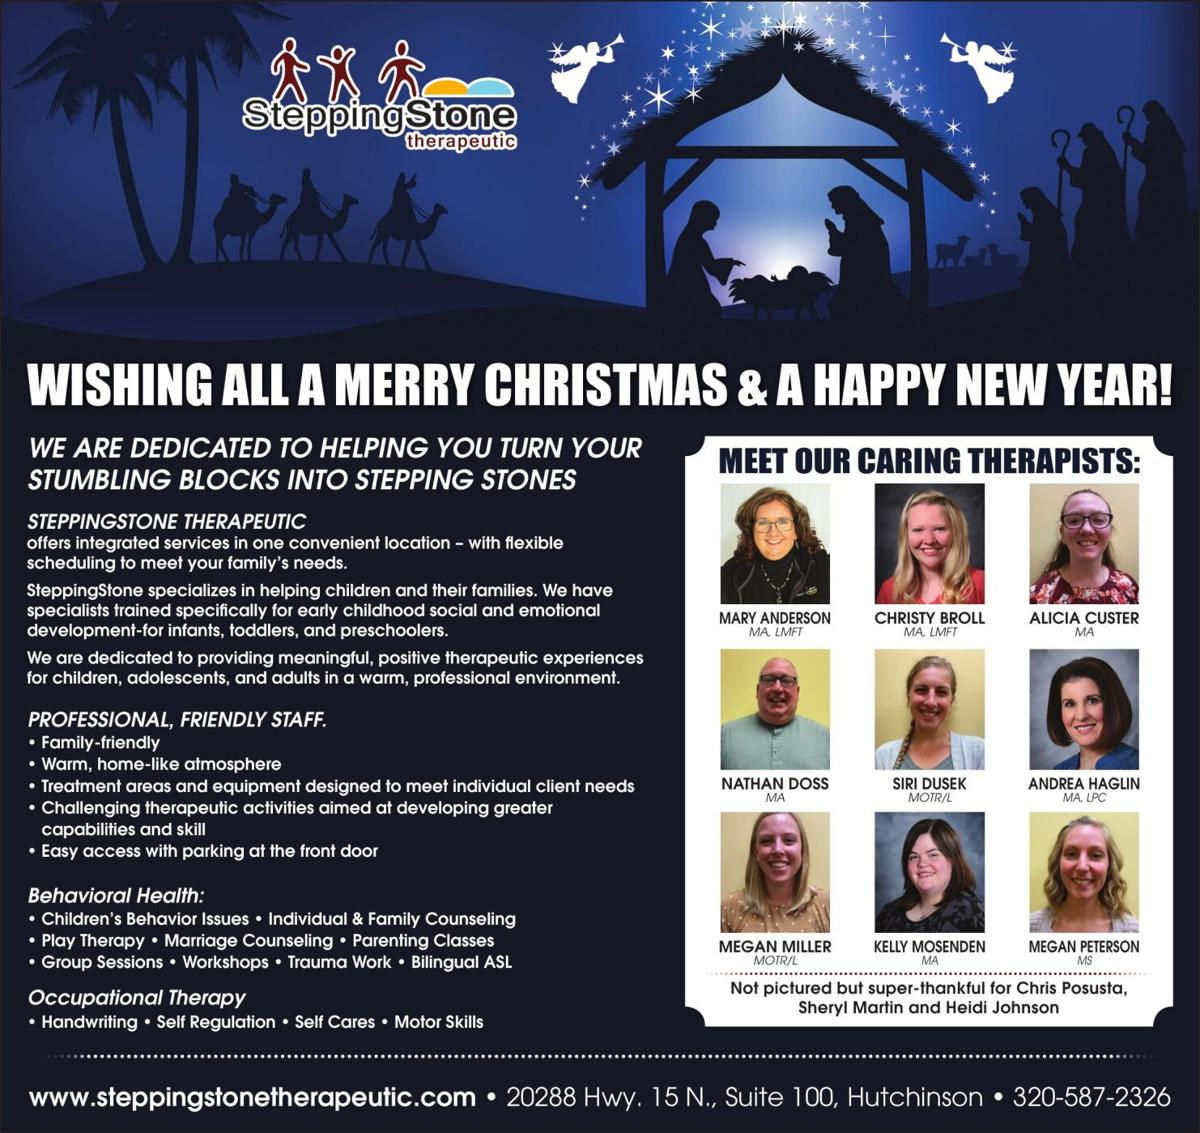 Wishing All A Merry ChristMAs & A hAppy